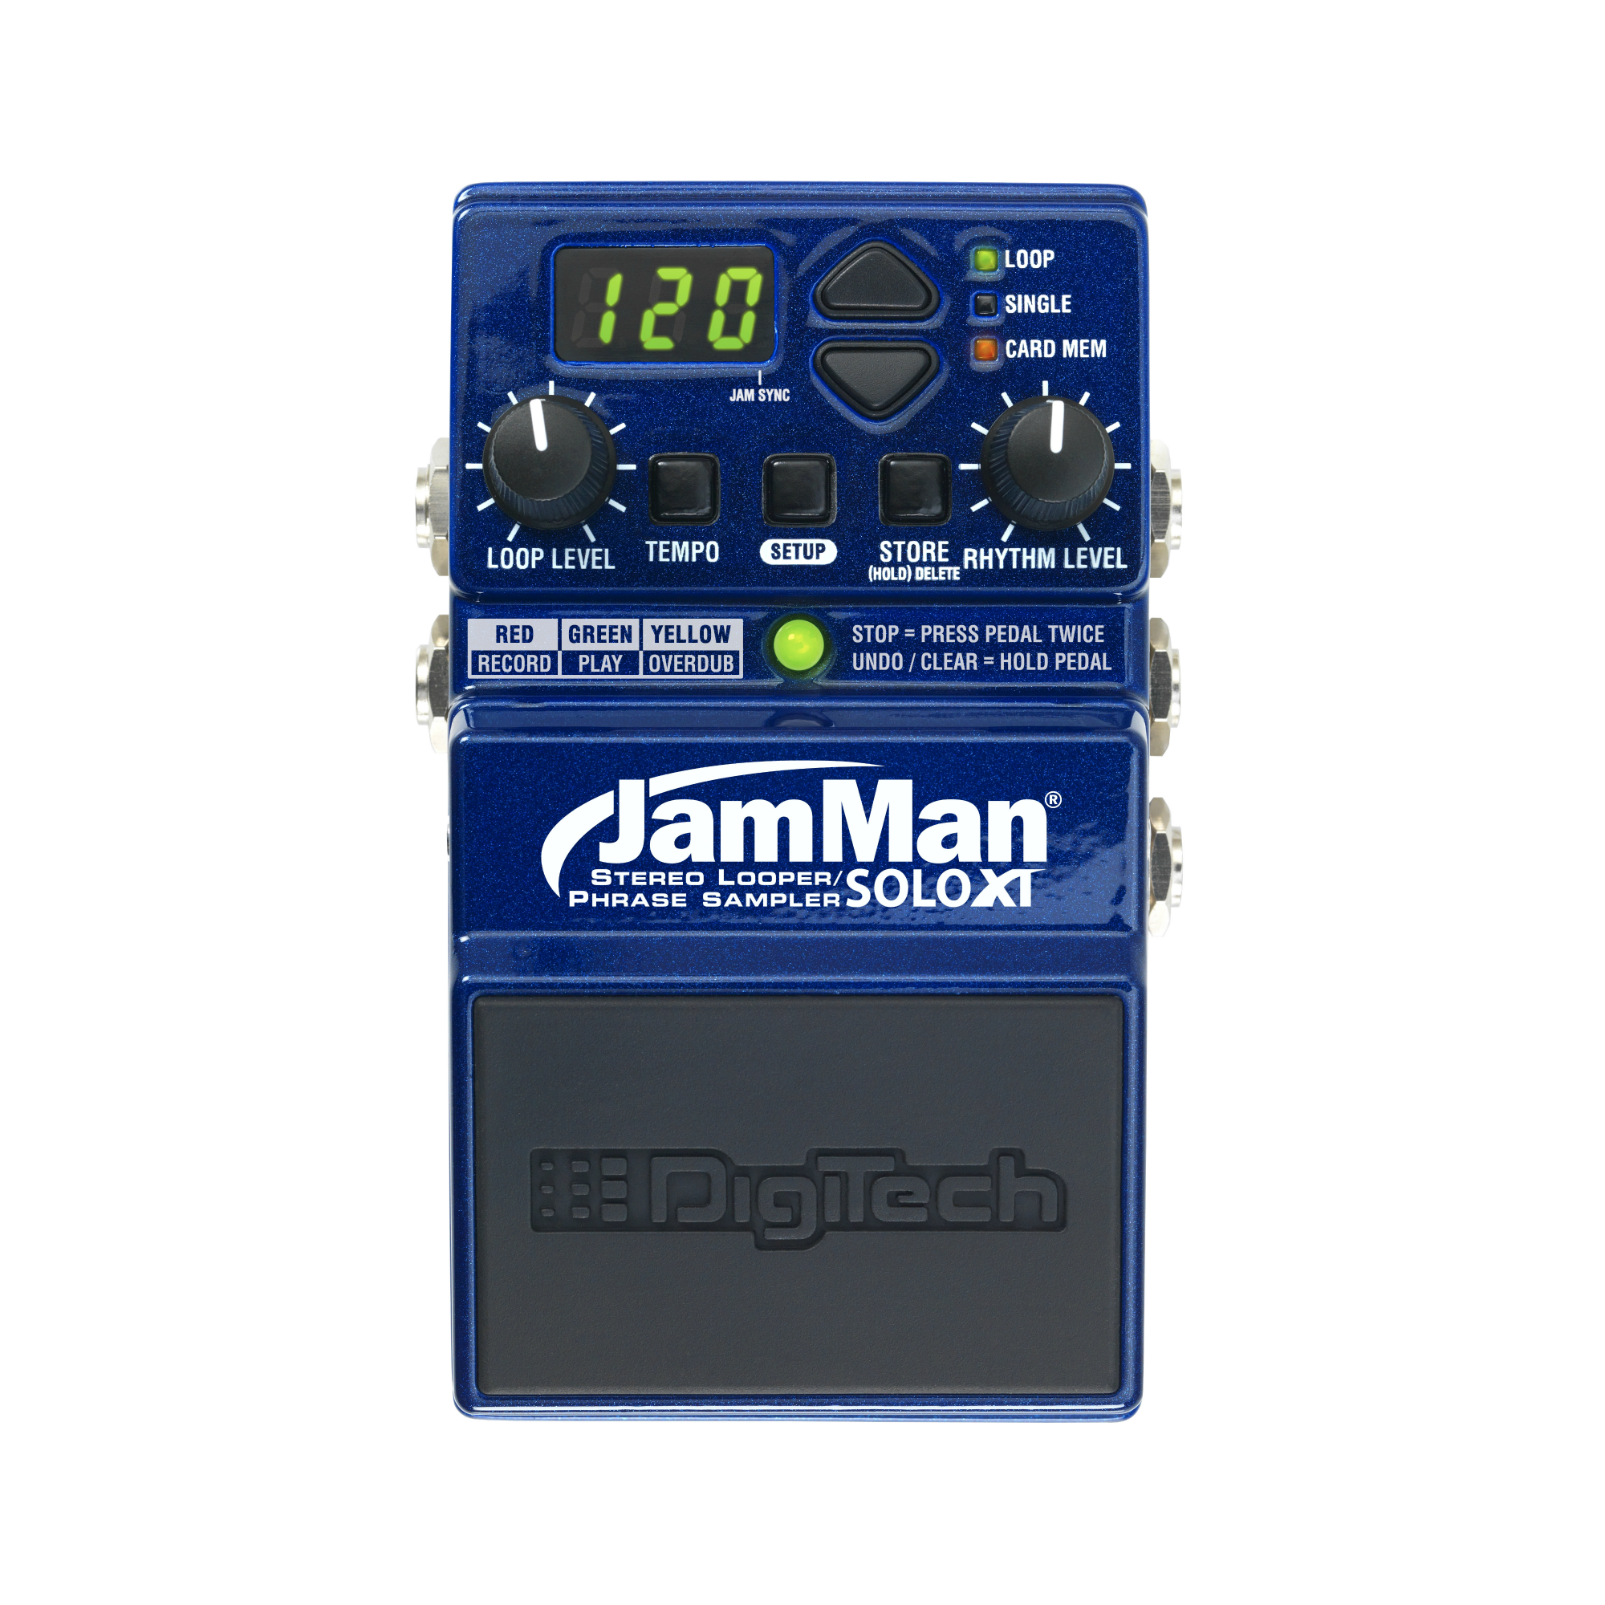 JamMan Solo XT - Blue - Stereo Looping in a Compact Pedal with JamSync - Front